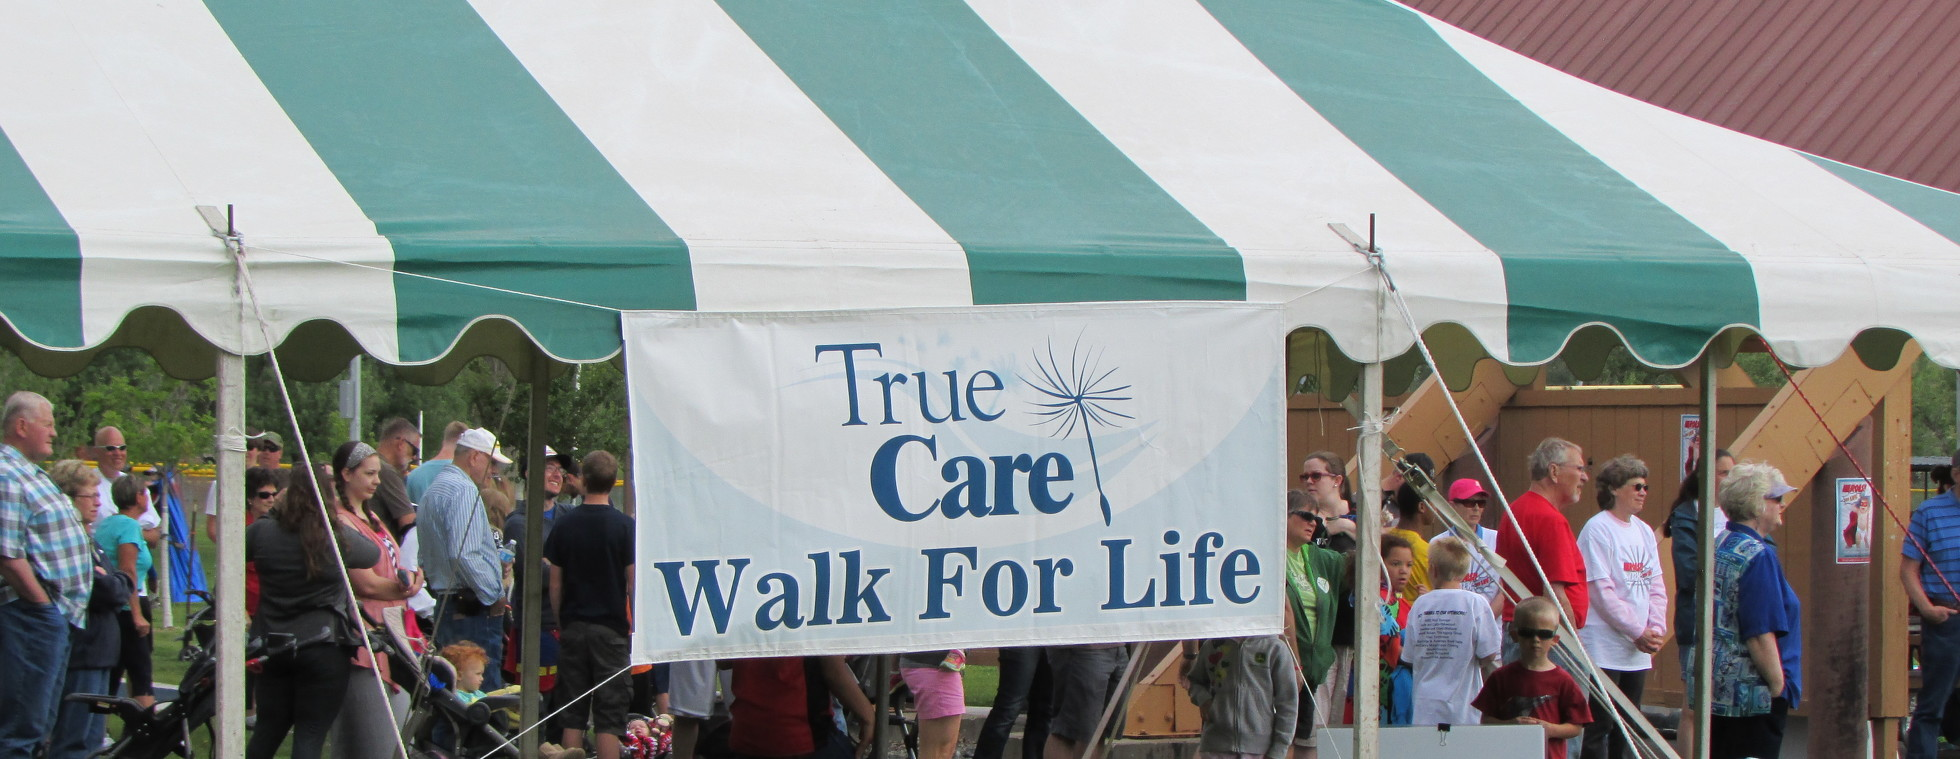 True Care Walk for Life